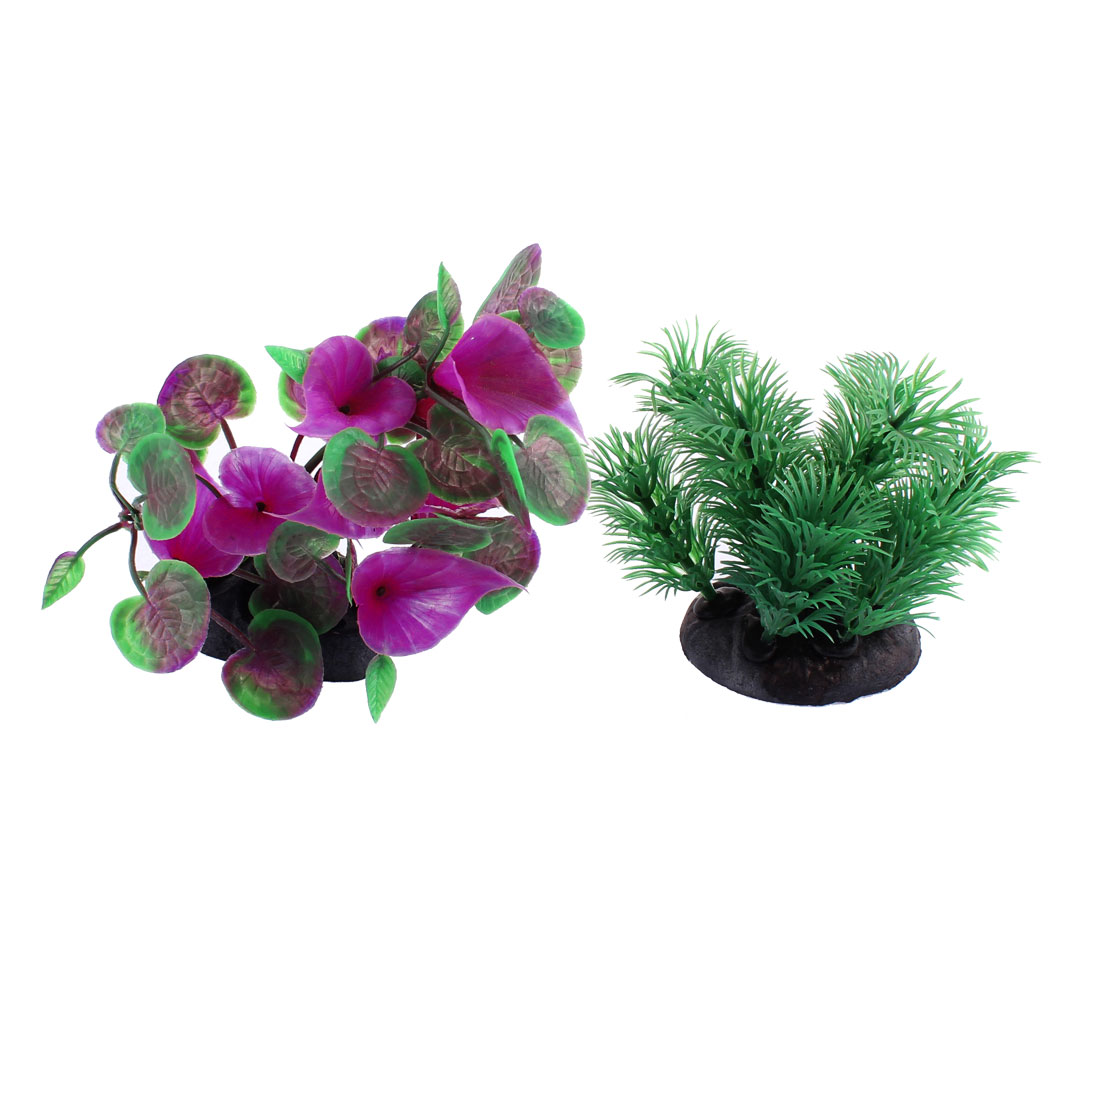 Aquarium Fishbowl Plastic Emulational Water Plant Grass Purple Green 2 Pcs